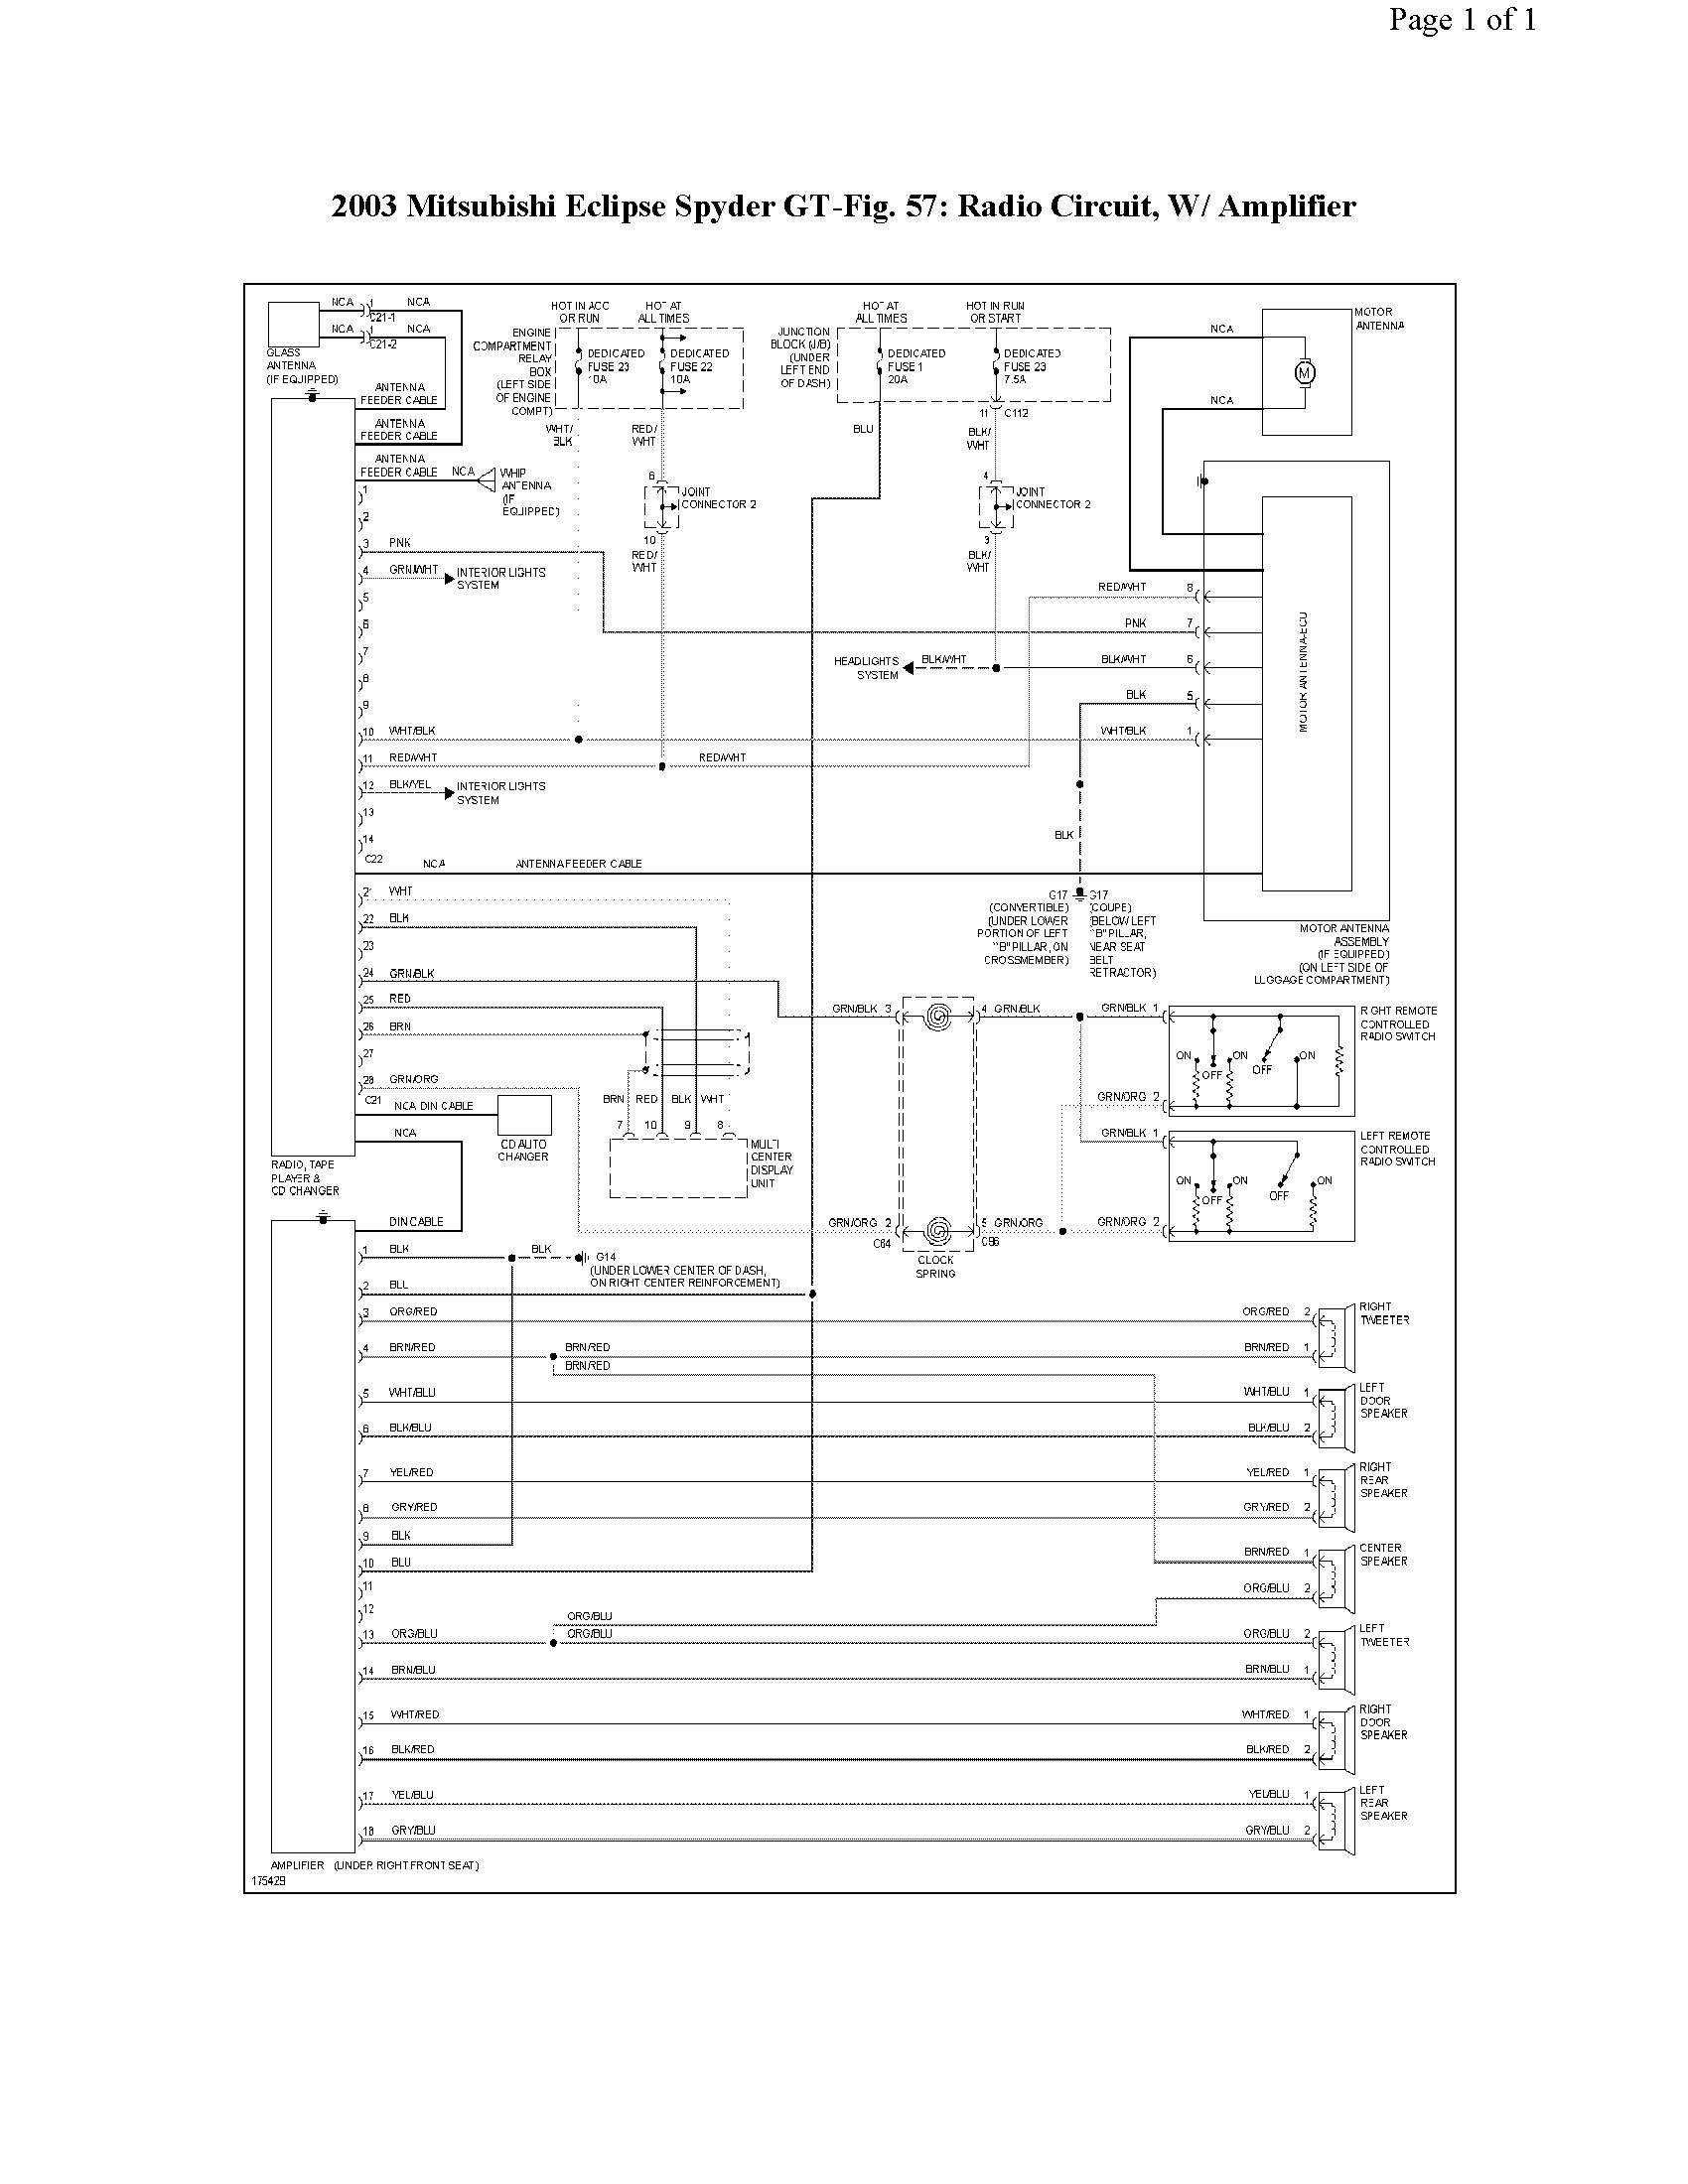 2002 mitsubishi eclipse engine diagram 3 wire electrical wiring manual e books galant best library2002 of